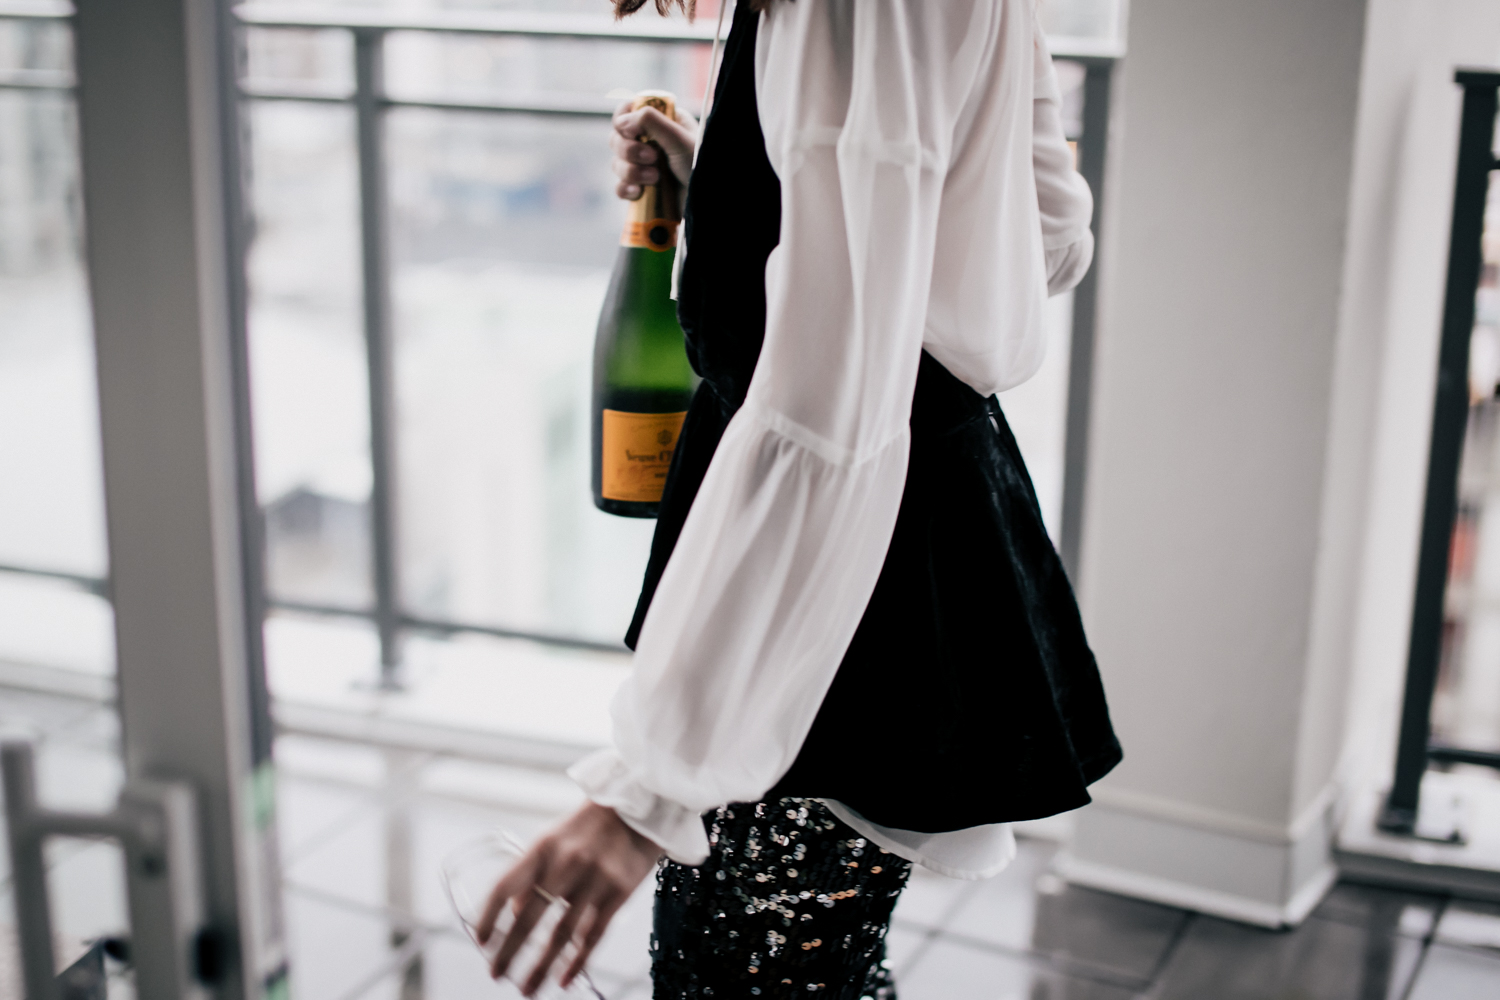 NYE outfit inspiration via Express